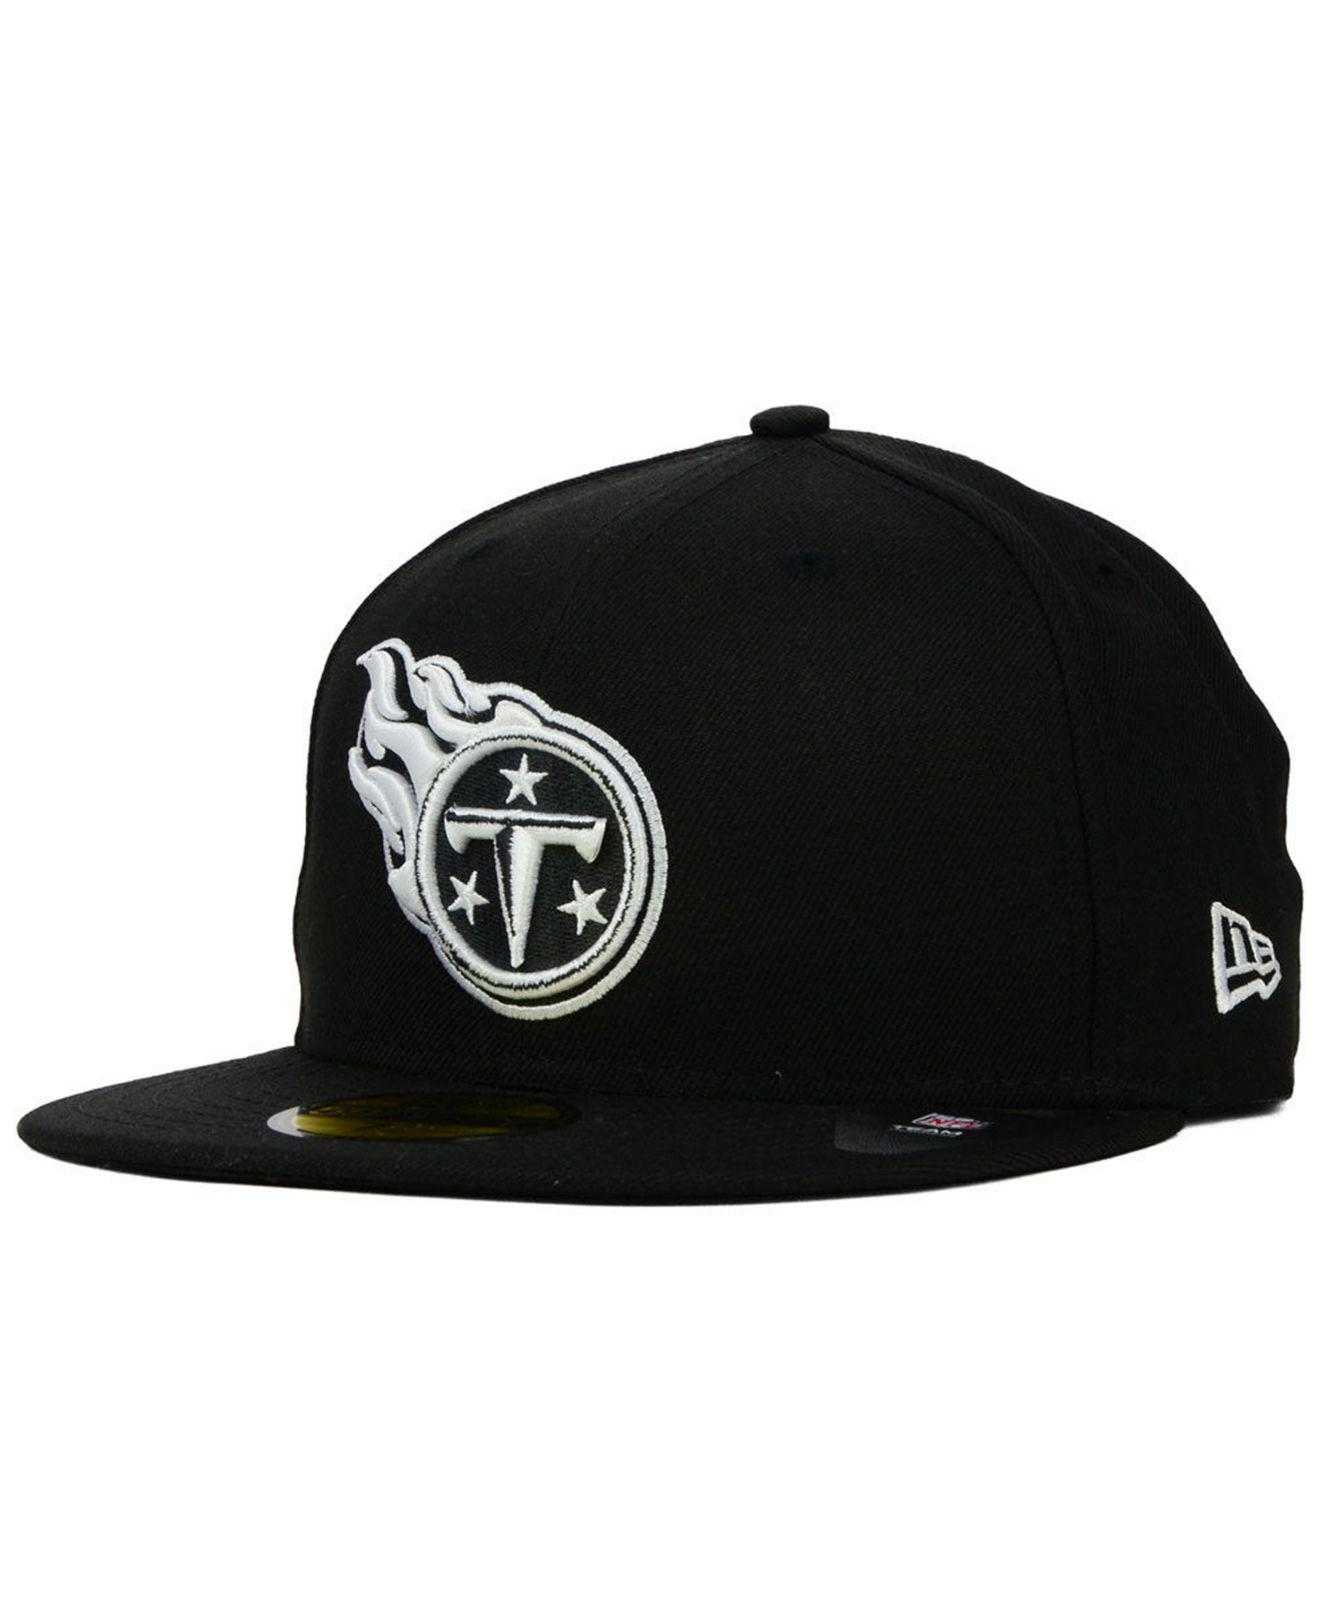 ff26d9b38 Lyst - KTZ Tennessee Titans Black And White 59fifty Fitted Cap in ...